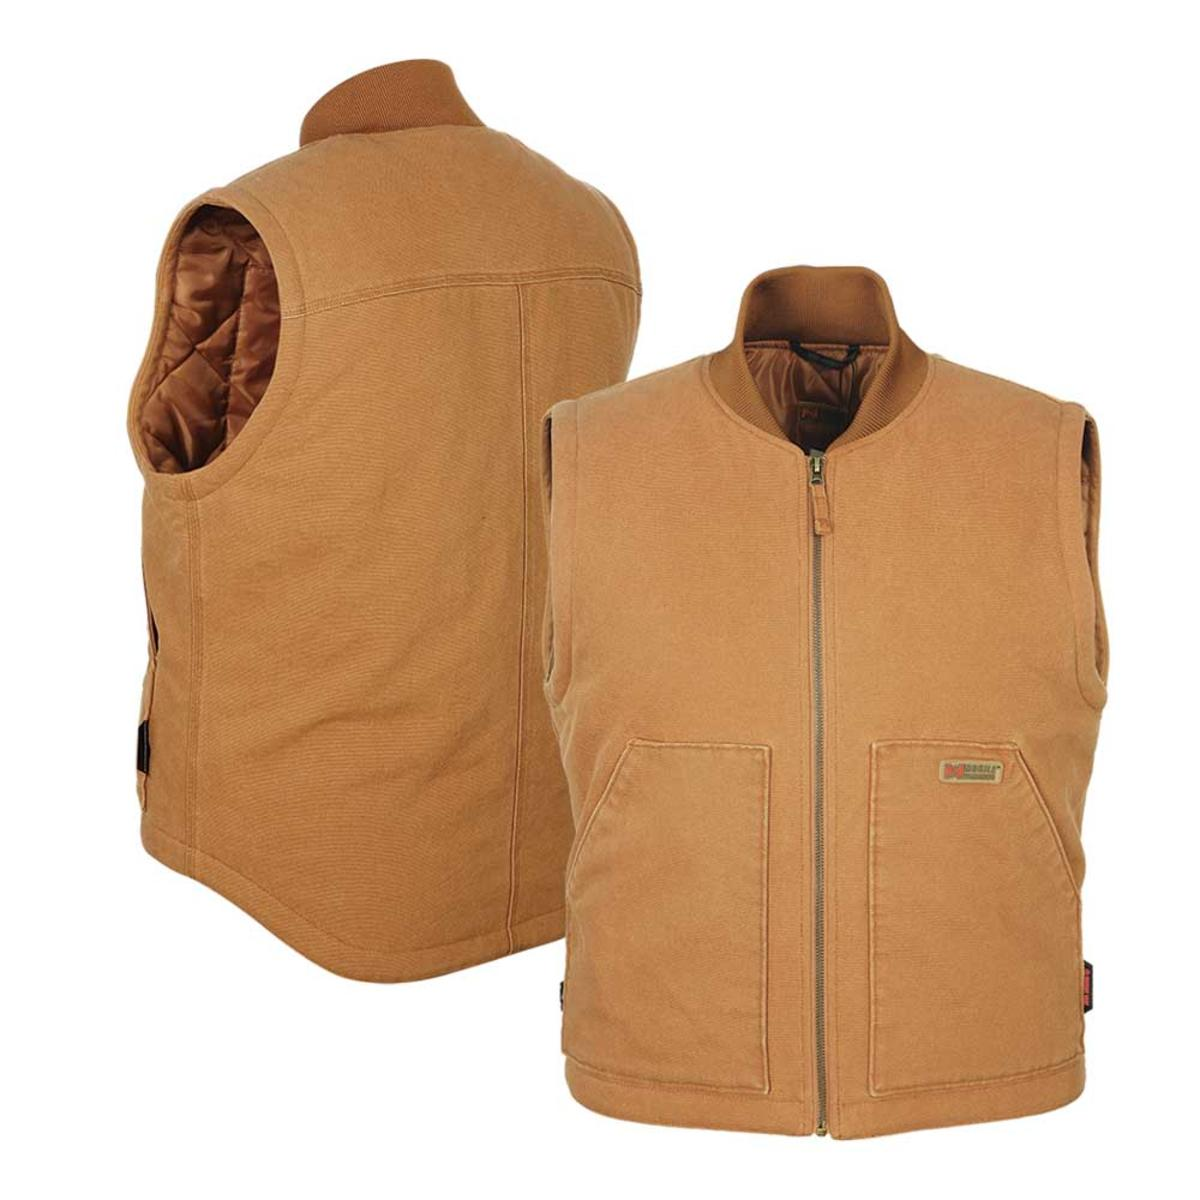 901eea81f42 Mobile Warming 12V Men s Foremen Heated Work Vest - The Warming Store